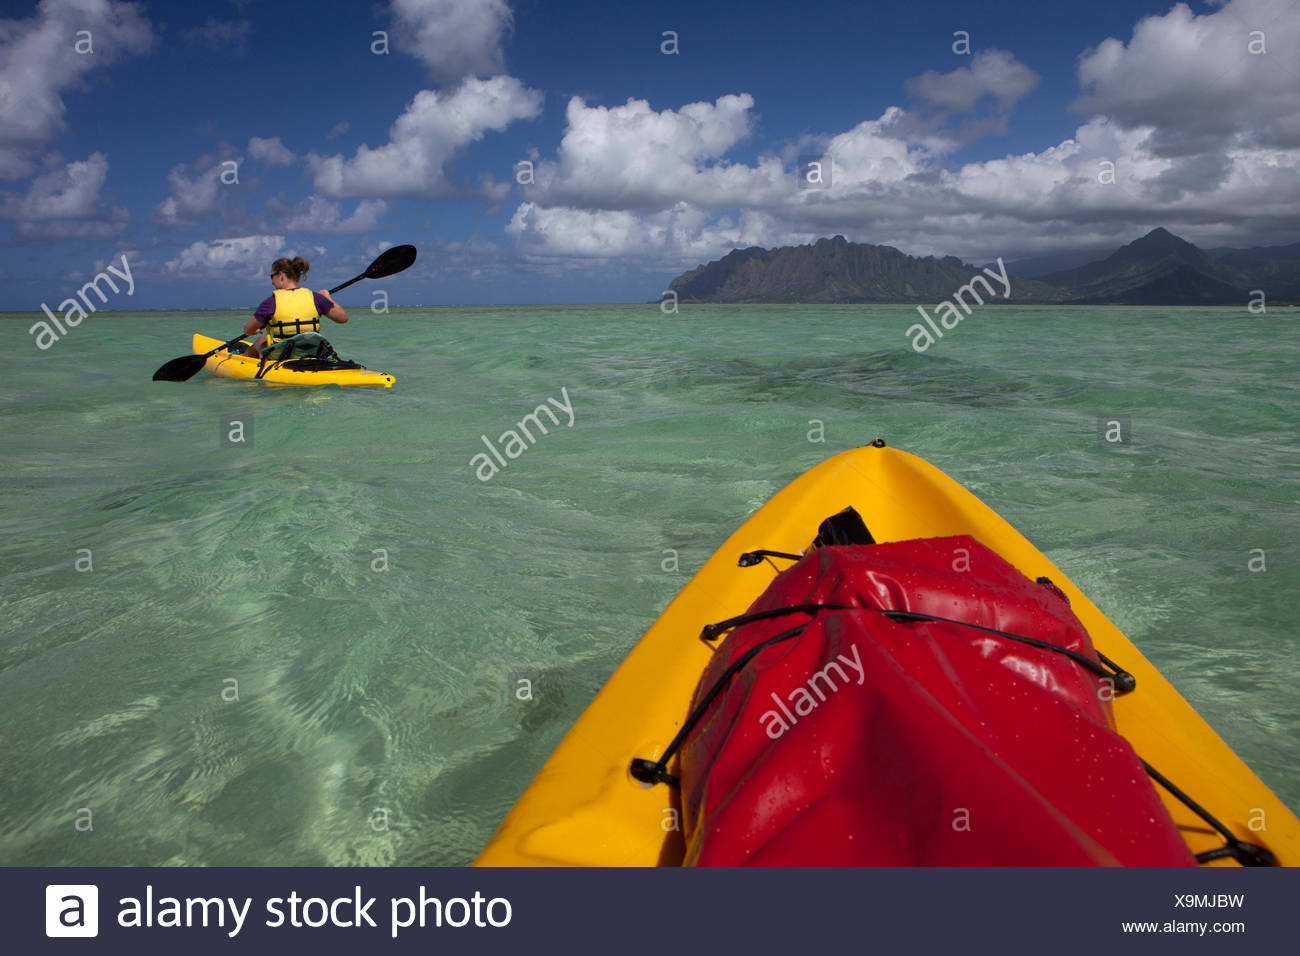 Kayaking in Kane'ohe Bay, Oahu, Hawai'i, United States of America - Stock Image